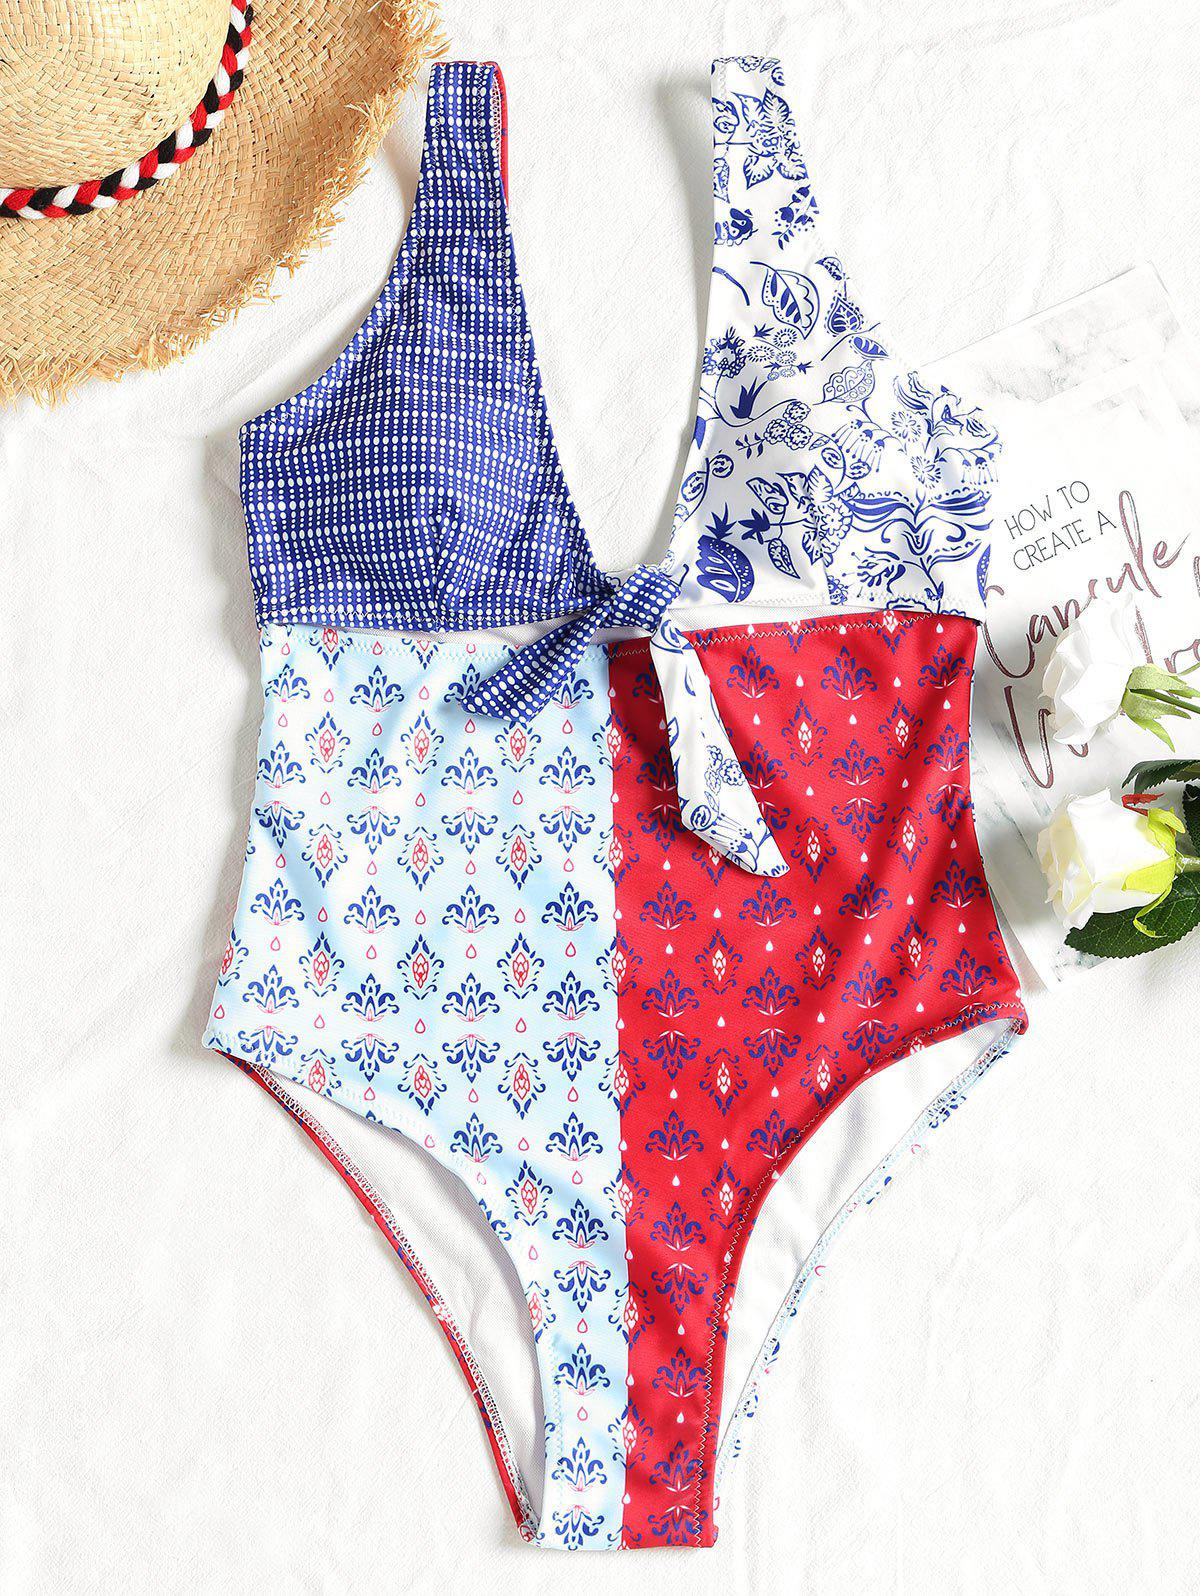 Backless High Cut Patterned Swimsuit - BLUE S